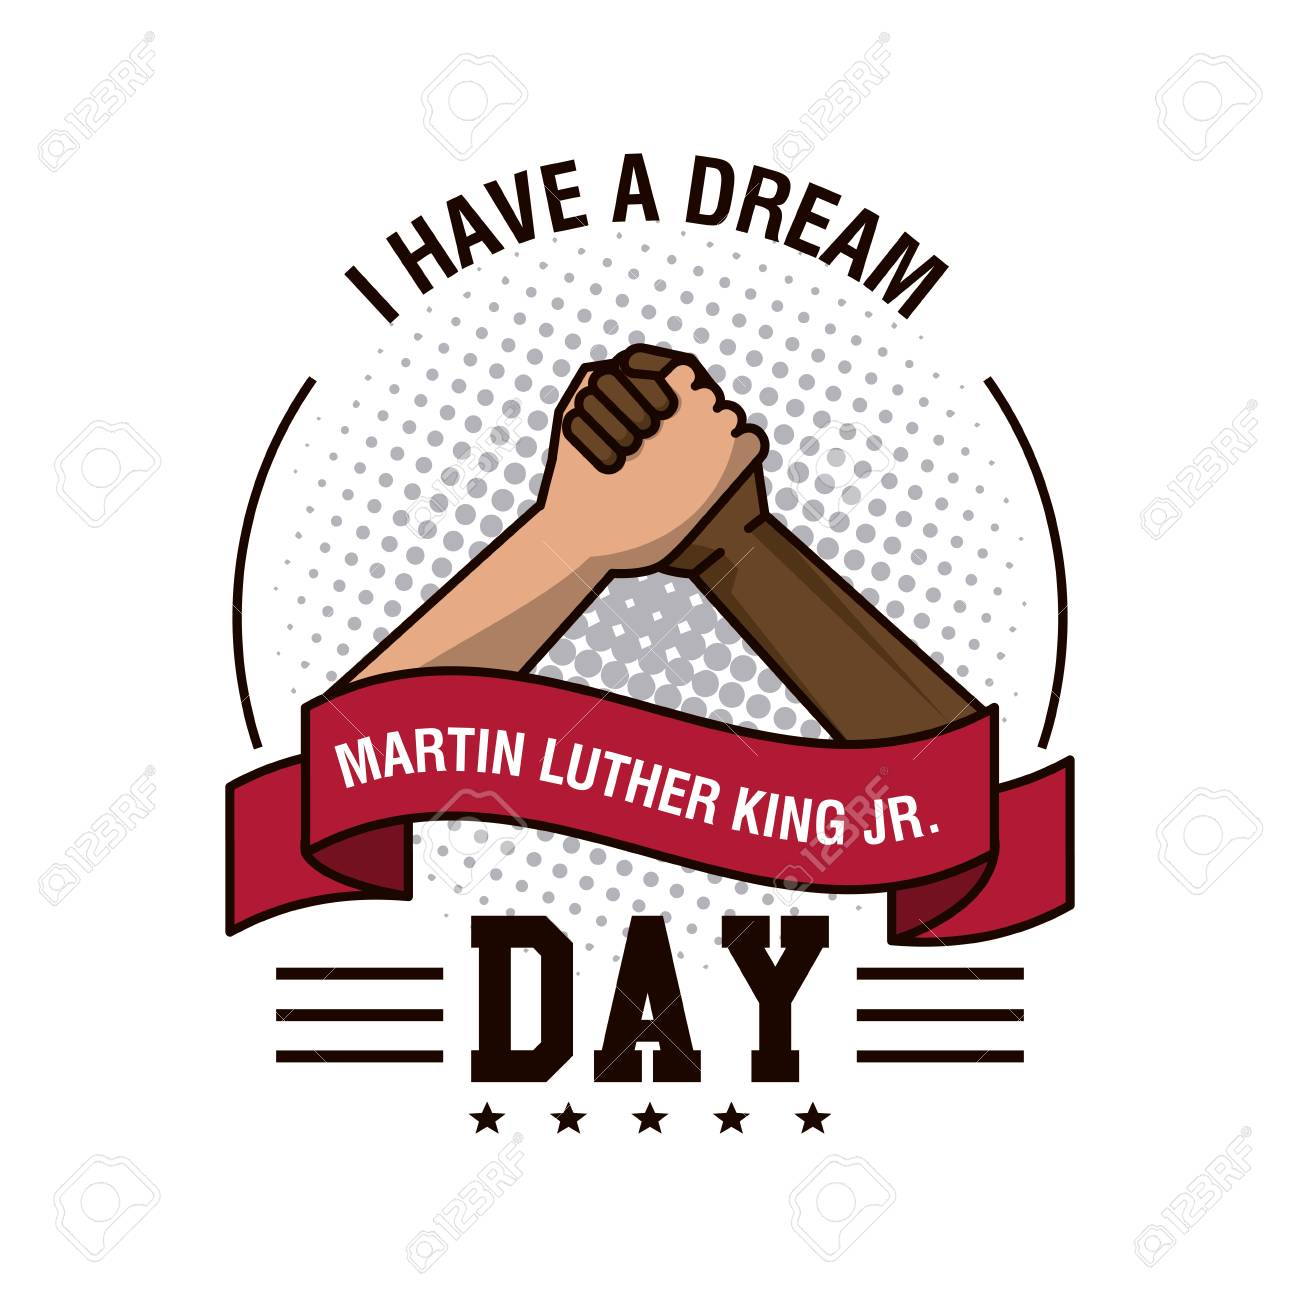 martin luther clipart at getdrawings com free for personal use rh getdrawings com martin luther king clip art free martin luther king clip art